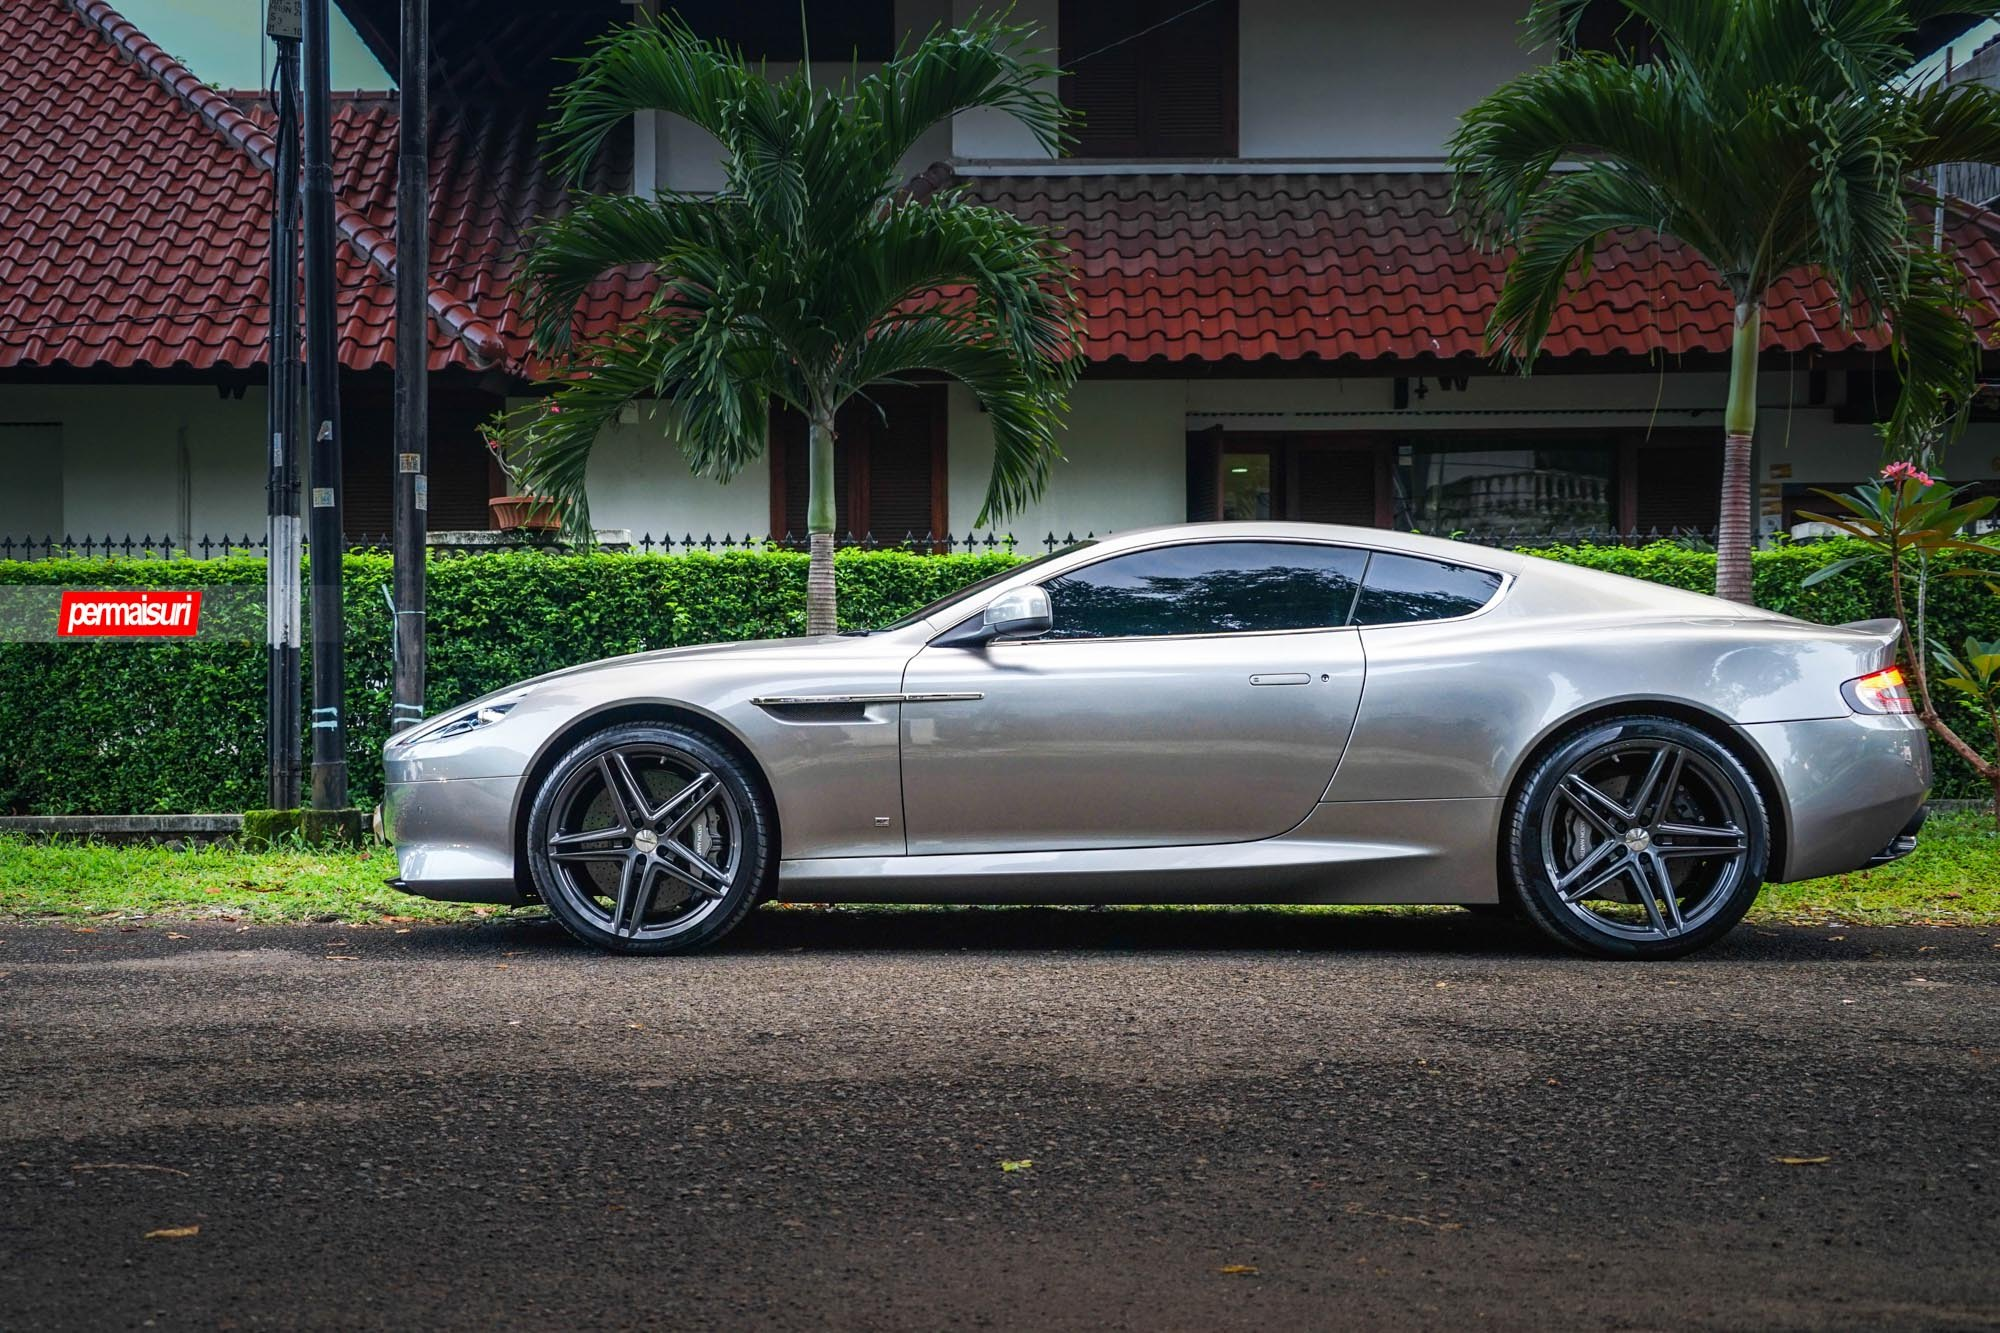 Aston Martin Db9 On Flow Formed Vossen Wheels Photo By